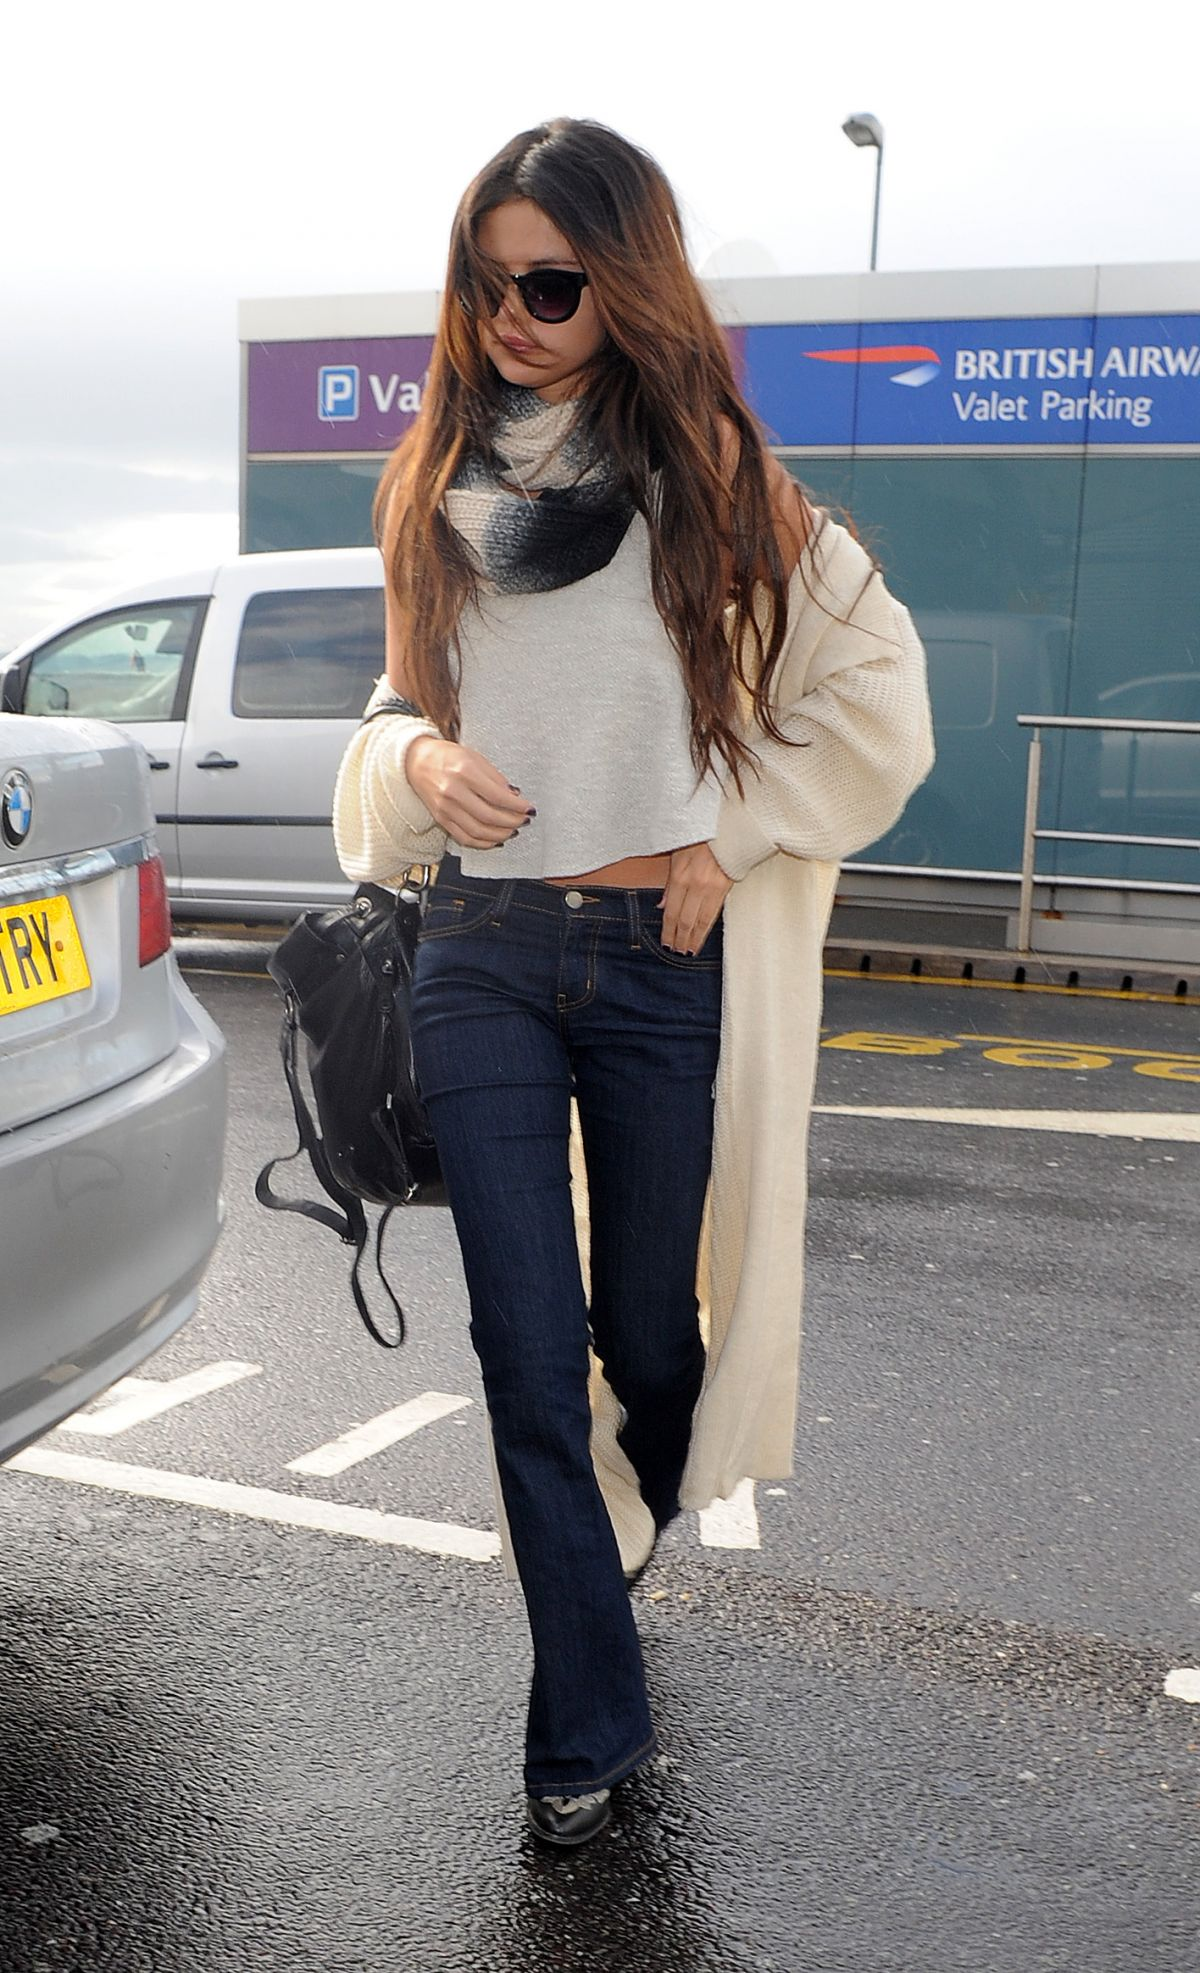 SELENA GOMEZ Arrives at Heathrow Airport in London